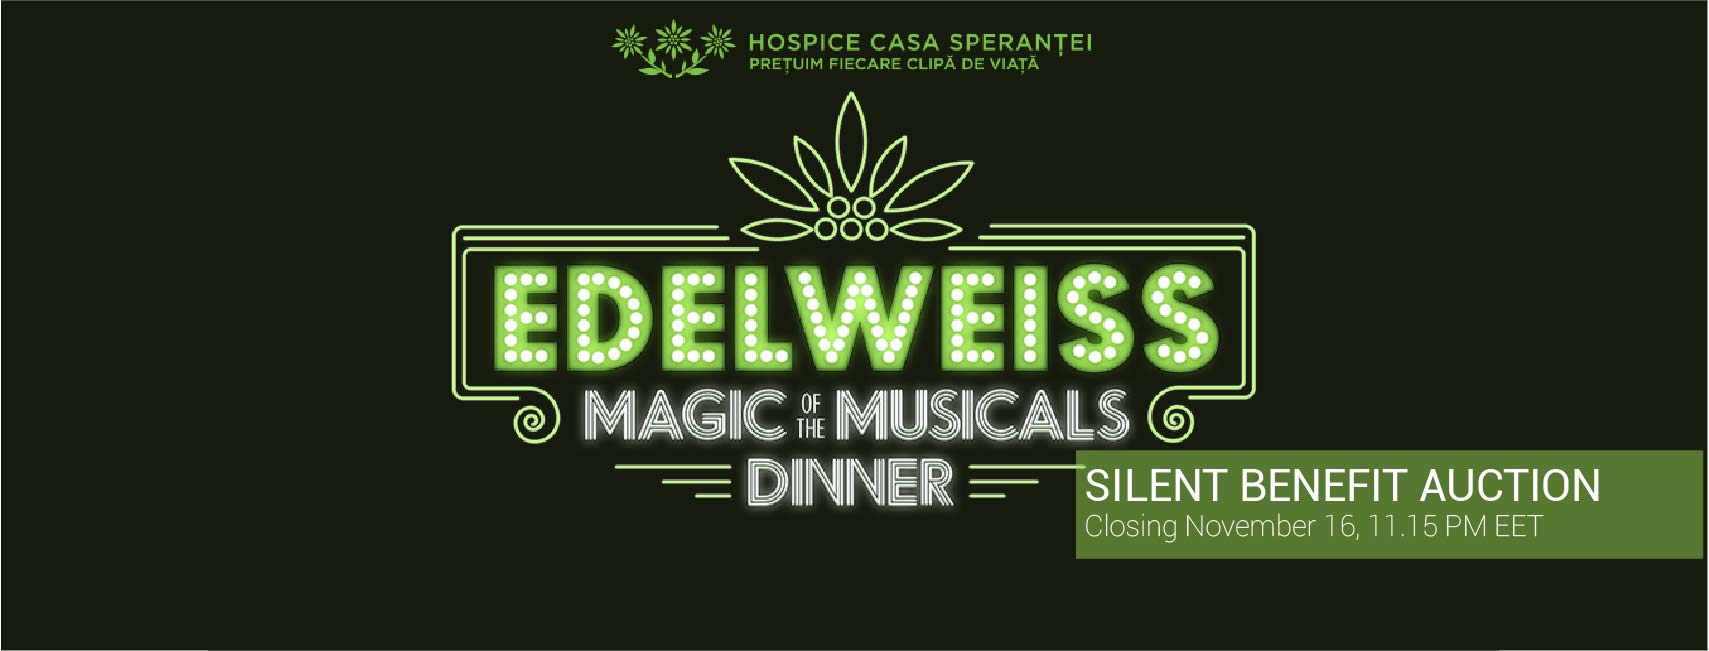 Edelweiss Magic of the Musicals Dinner